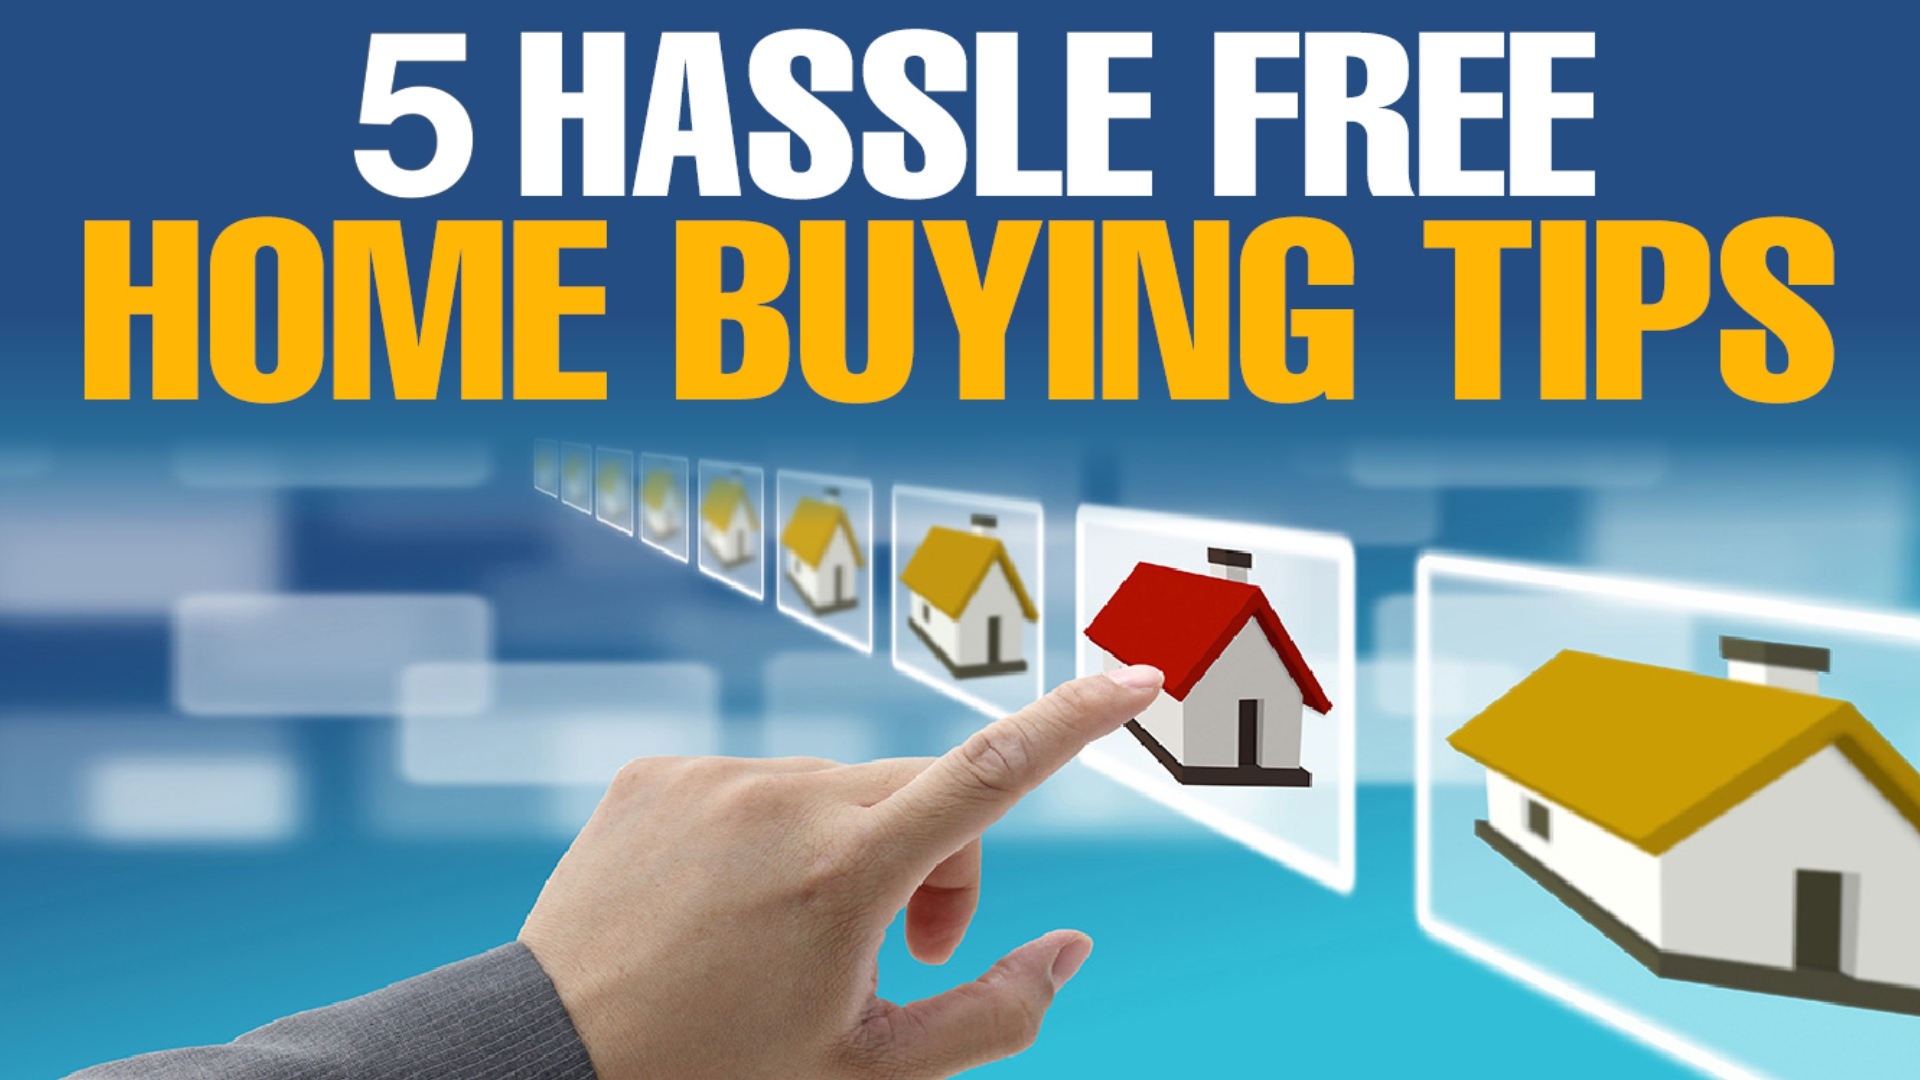 new home builders buying tips essay 11 new construction home buying tips: how to buy a new house posted by ryan fitzgerald on wednesday, july research the builder when buying new construction homes.